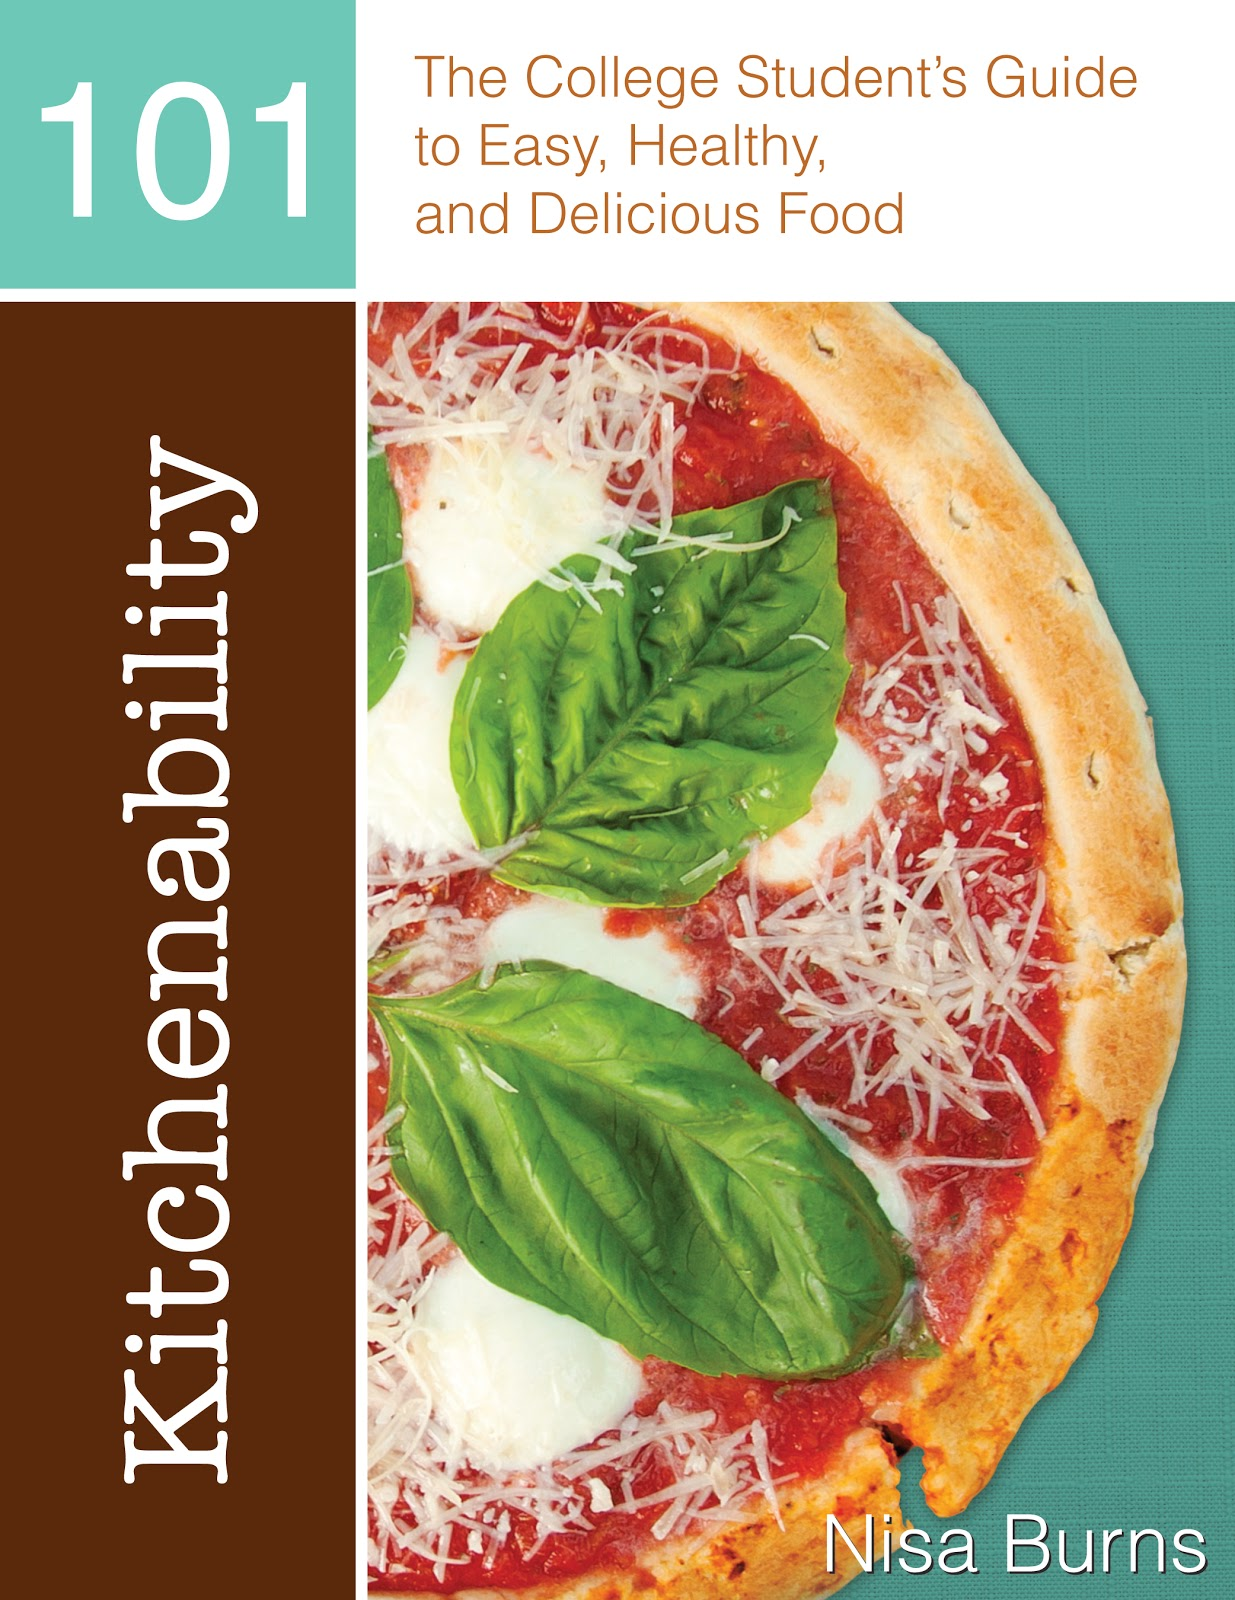 College Cookbook Cover : To market with san diego foodstuff